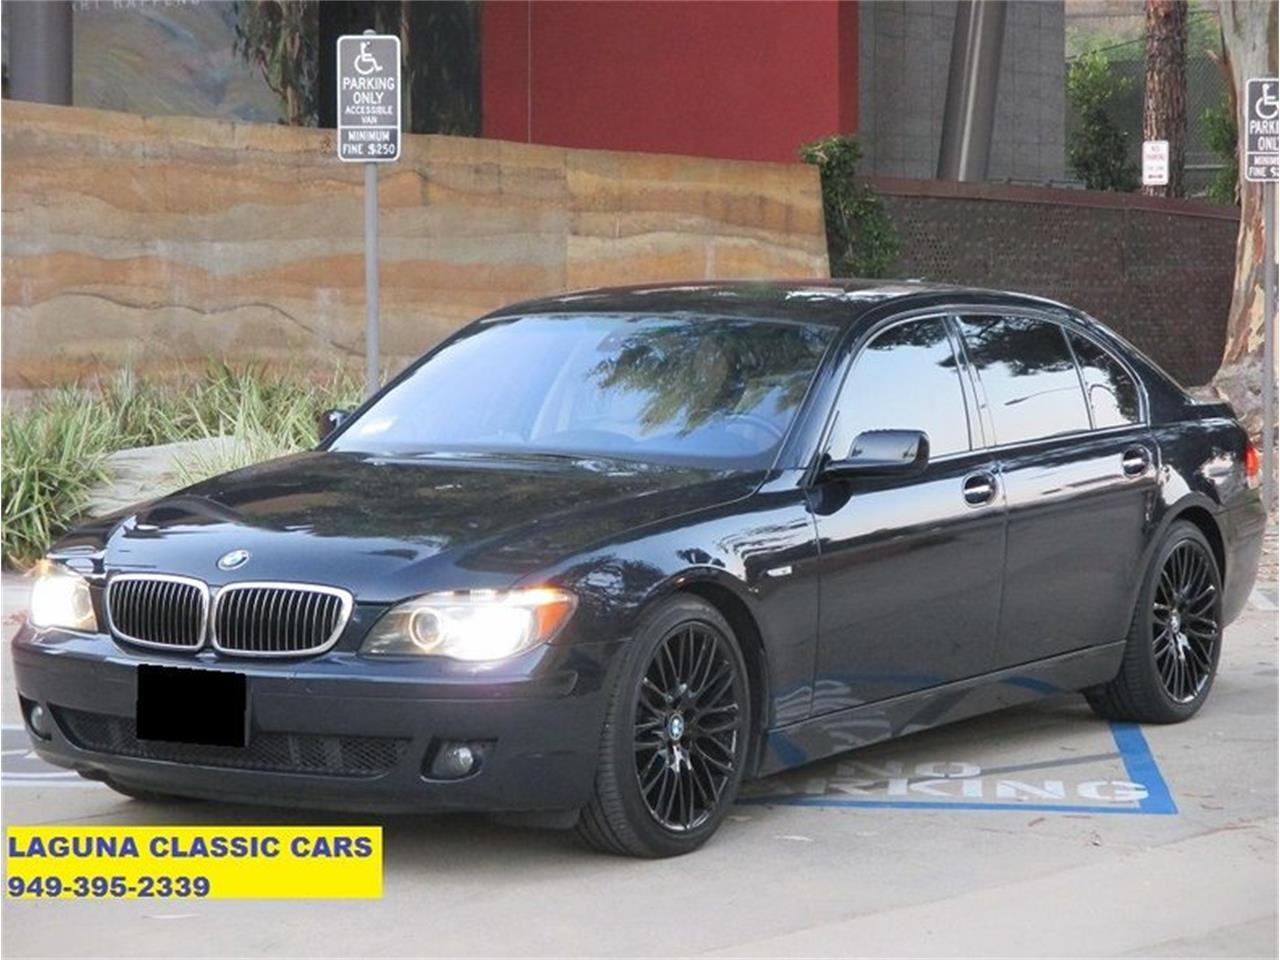 2007 BMW 750li (CC-1296174) for sale in Laguna Beach, California